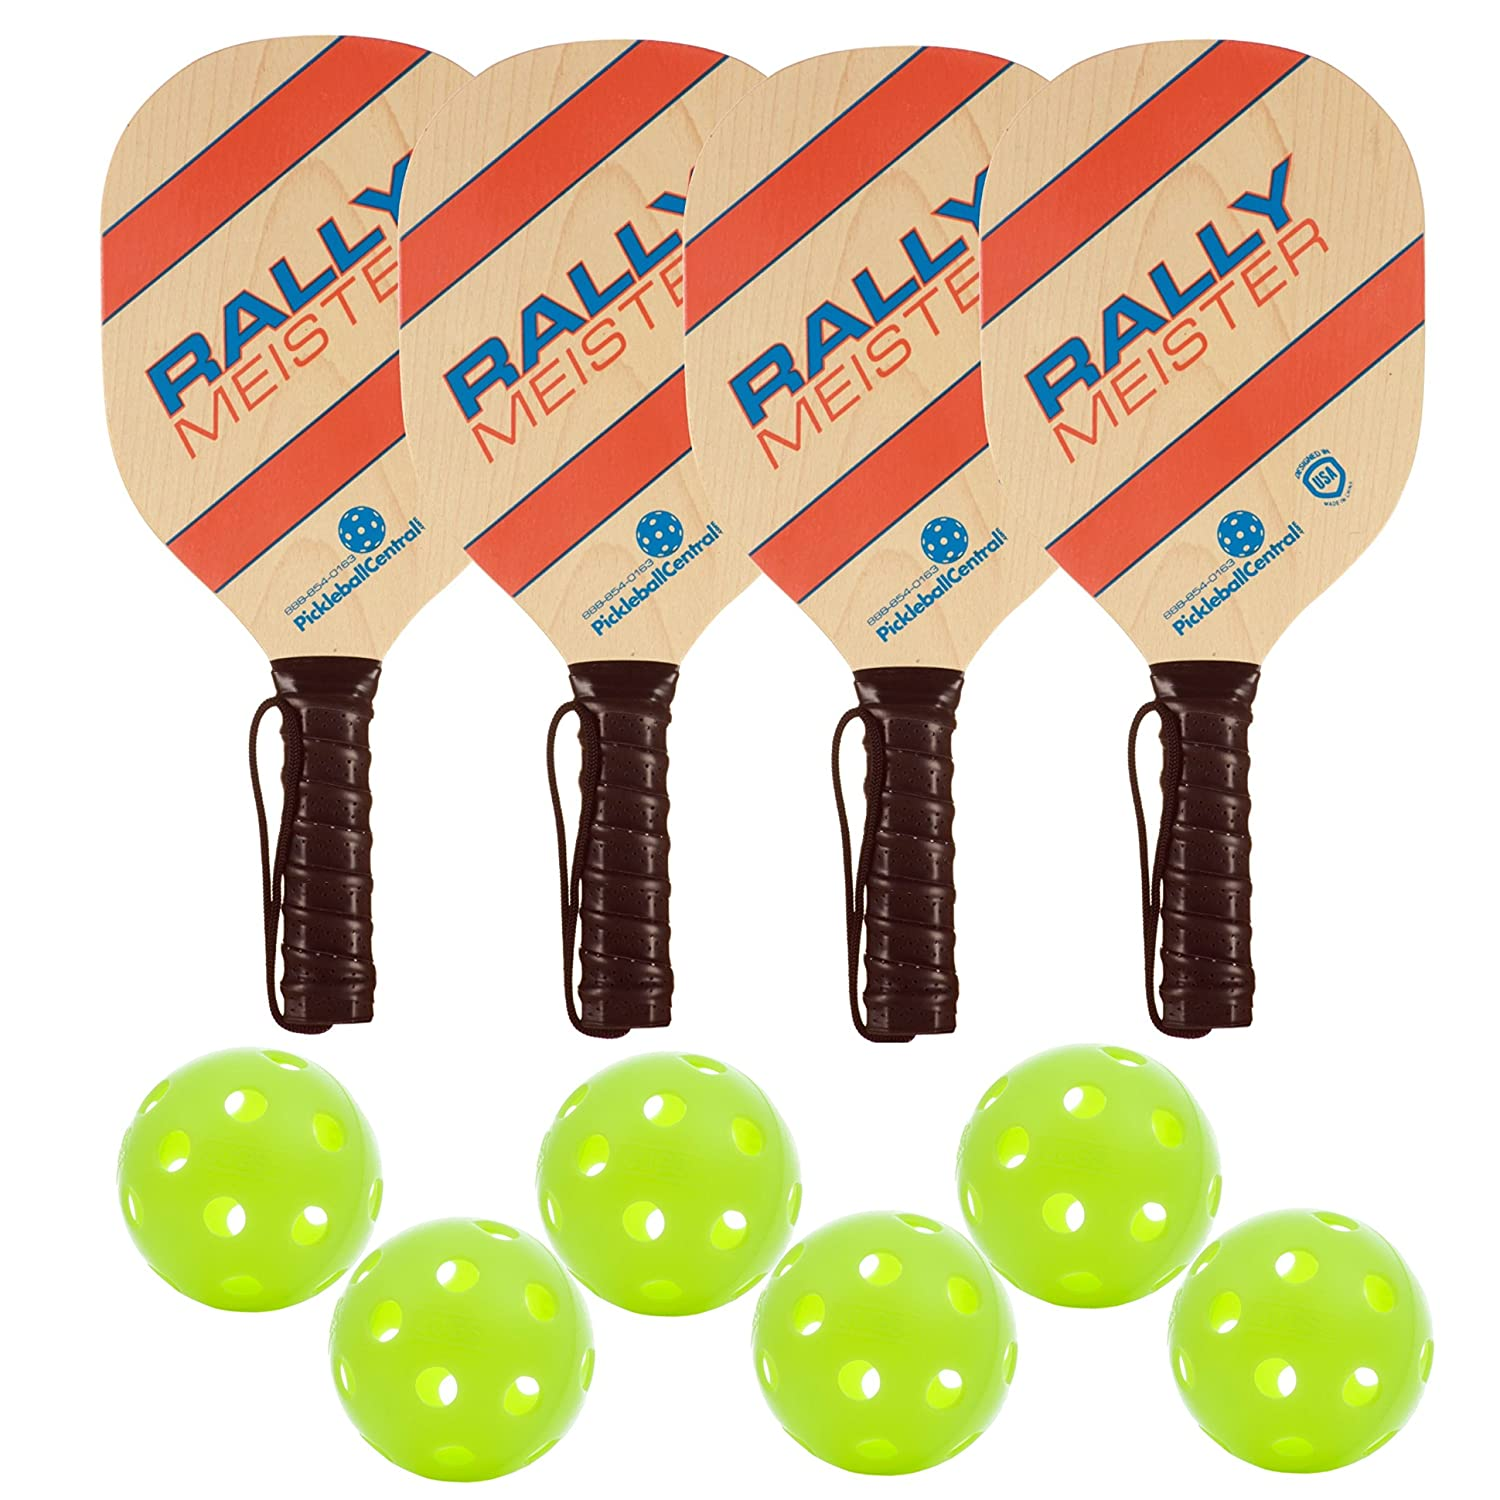 Rally Meister Wood Pickleball Paddle Bundle (Set included 2 Paddles & 4 Balls) rally-bundle